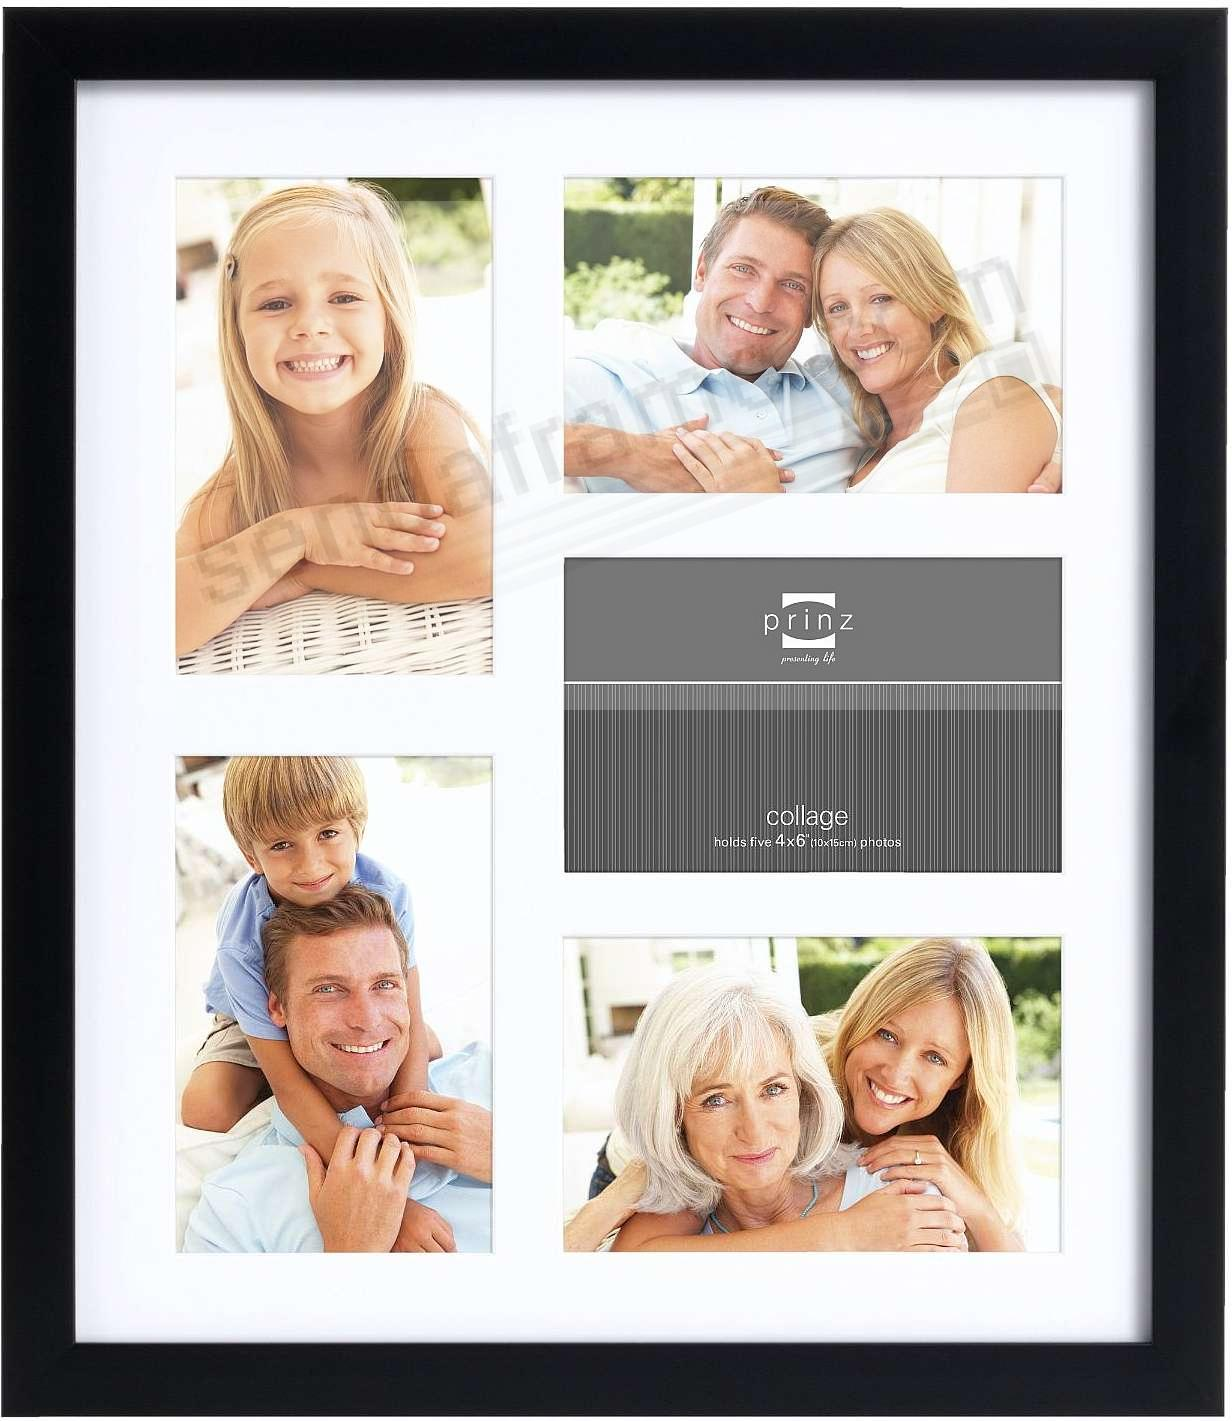 Matted black polystyrene collage frame for 5 - 4x6 prints by Prinz®